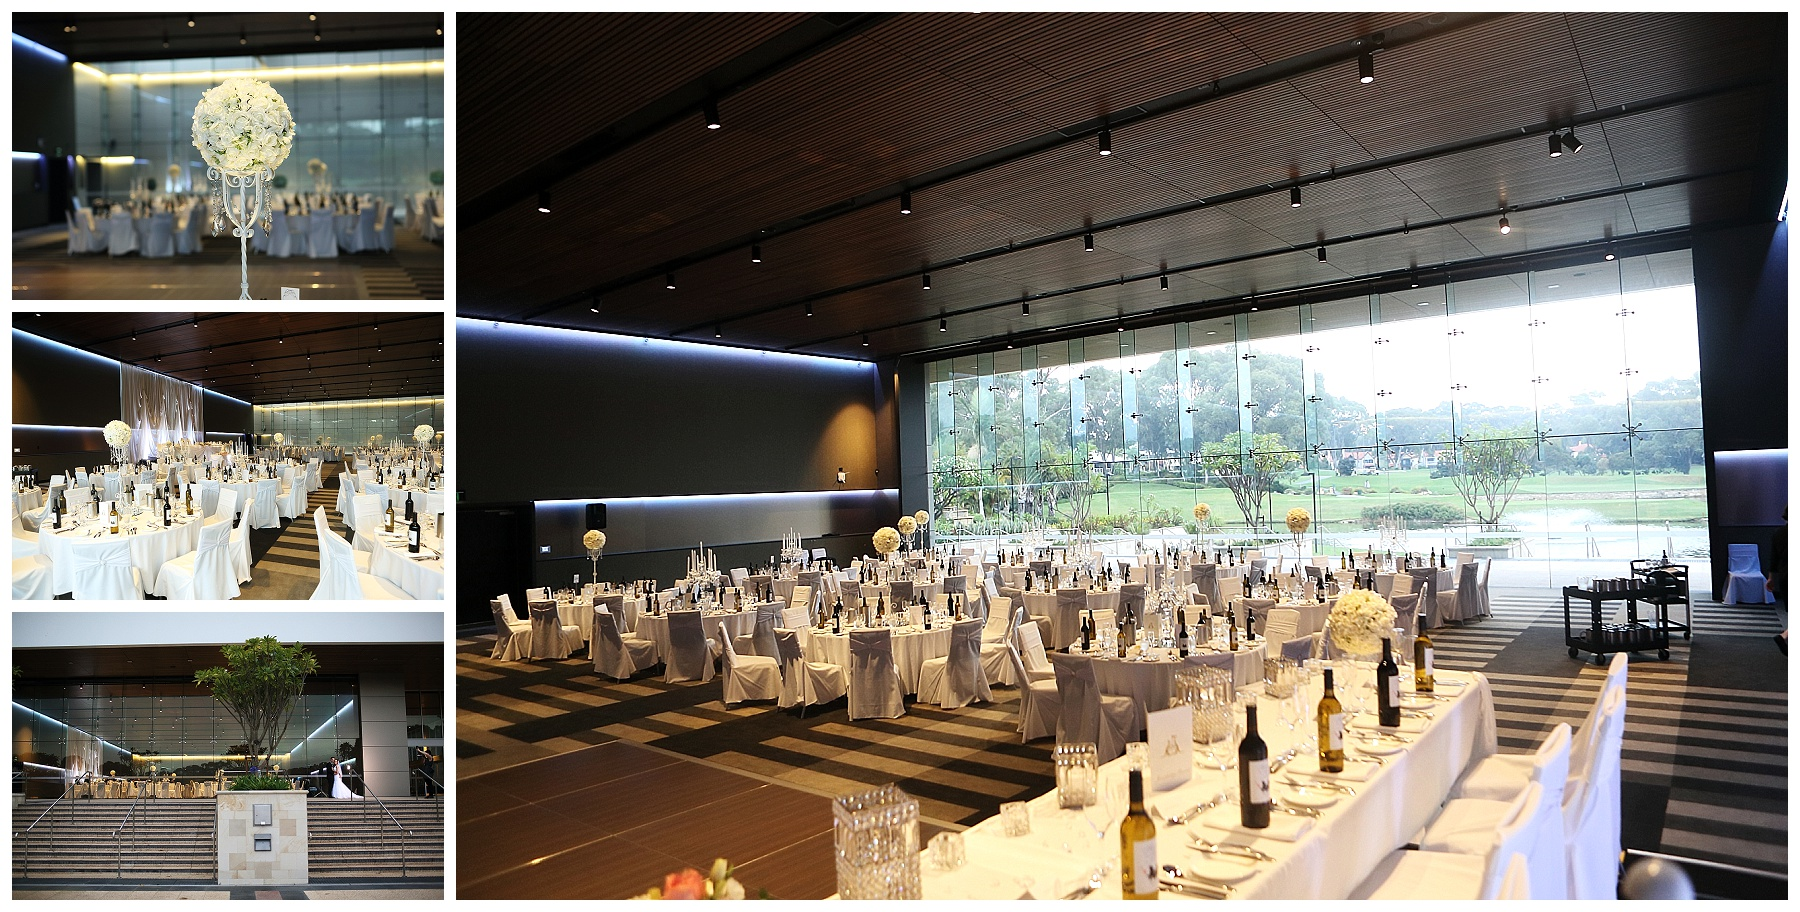 Lakeview Ballroom at Joondalup Resort